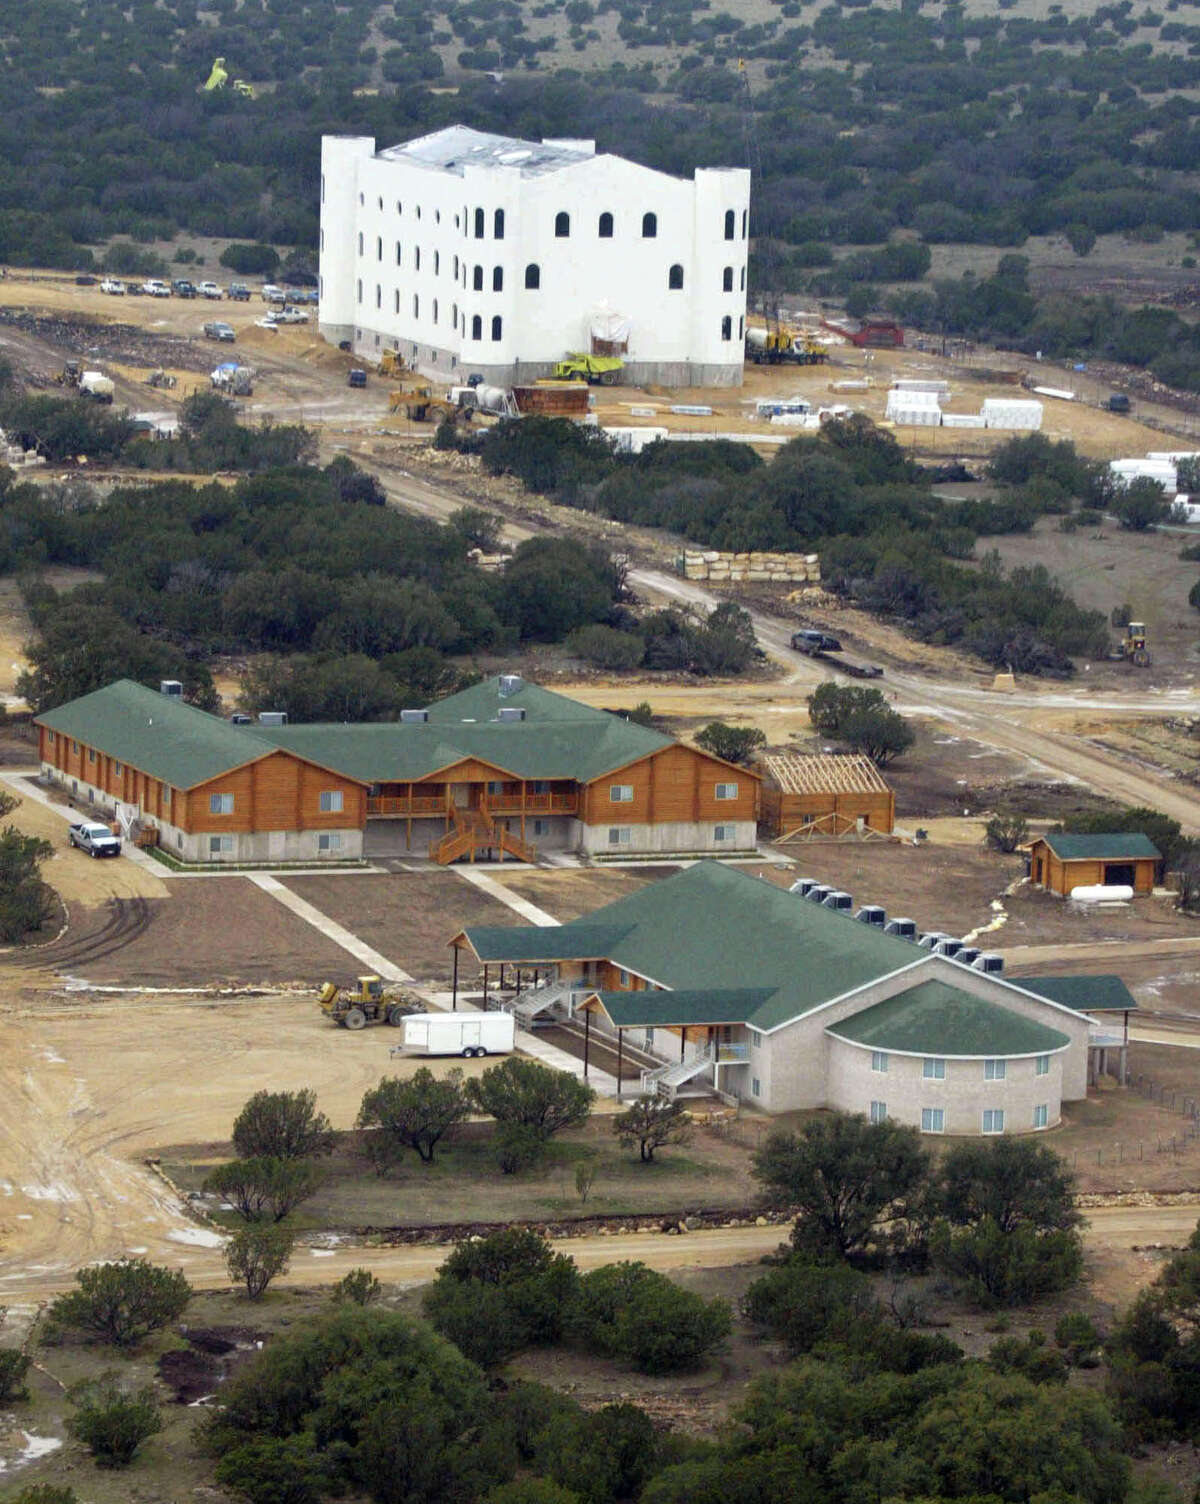 An aerial view of one of the homes on the Yearning for Zion (YFZ) compound owned by the Fundamentalist Church of Jesus Christ of Latter Day Saints April 8, 2008 in Eldorado, Texas. Some 416 children were removed from the polygamous sect's West Texas ranch by officials last week after allegations of abuse were reported. The children were placed in temporary custody of the state.